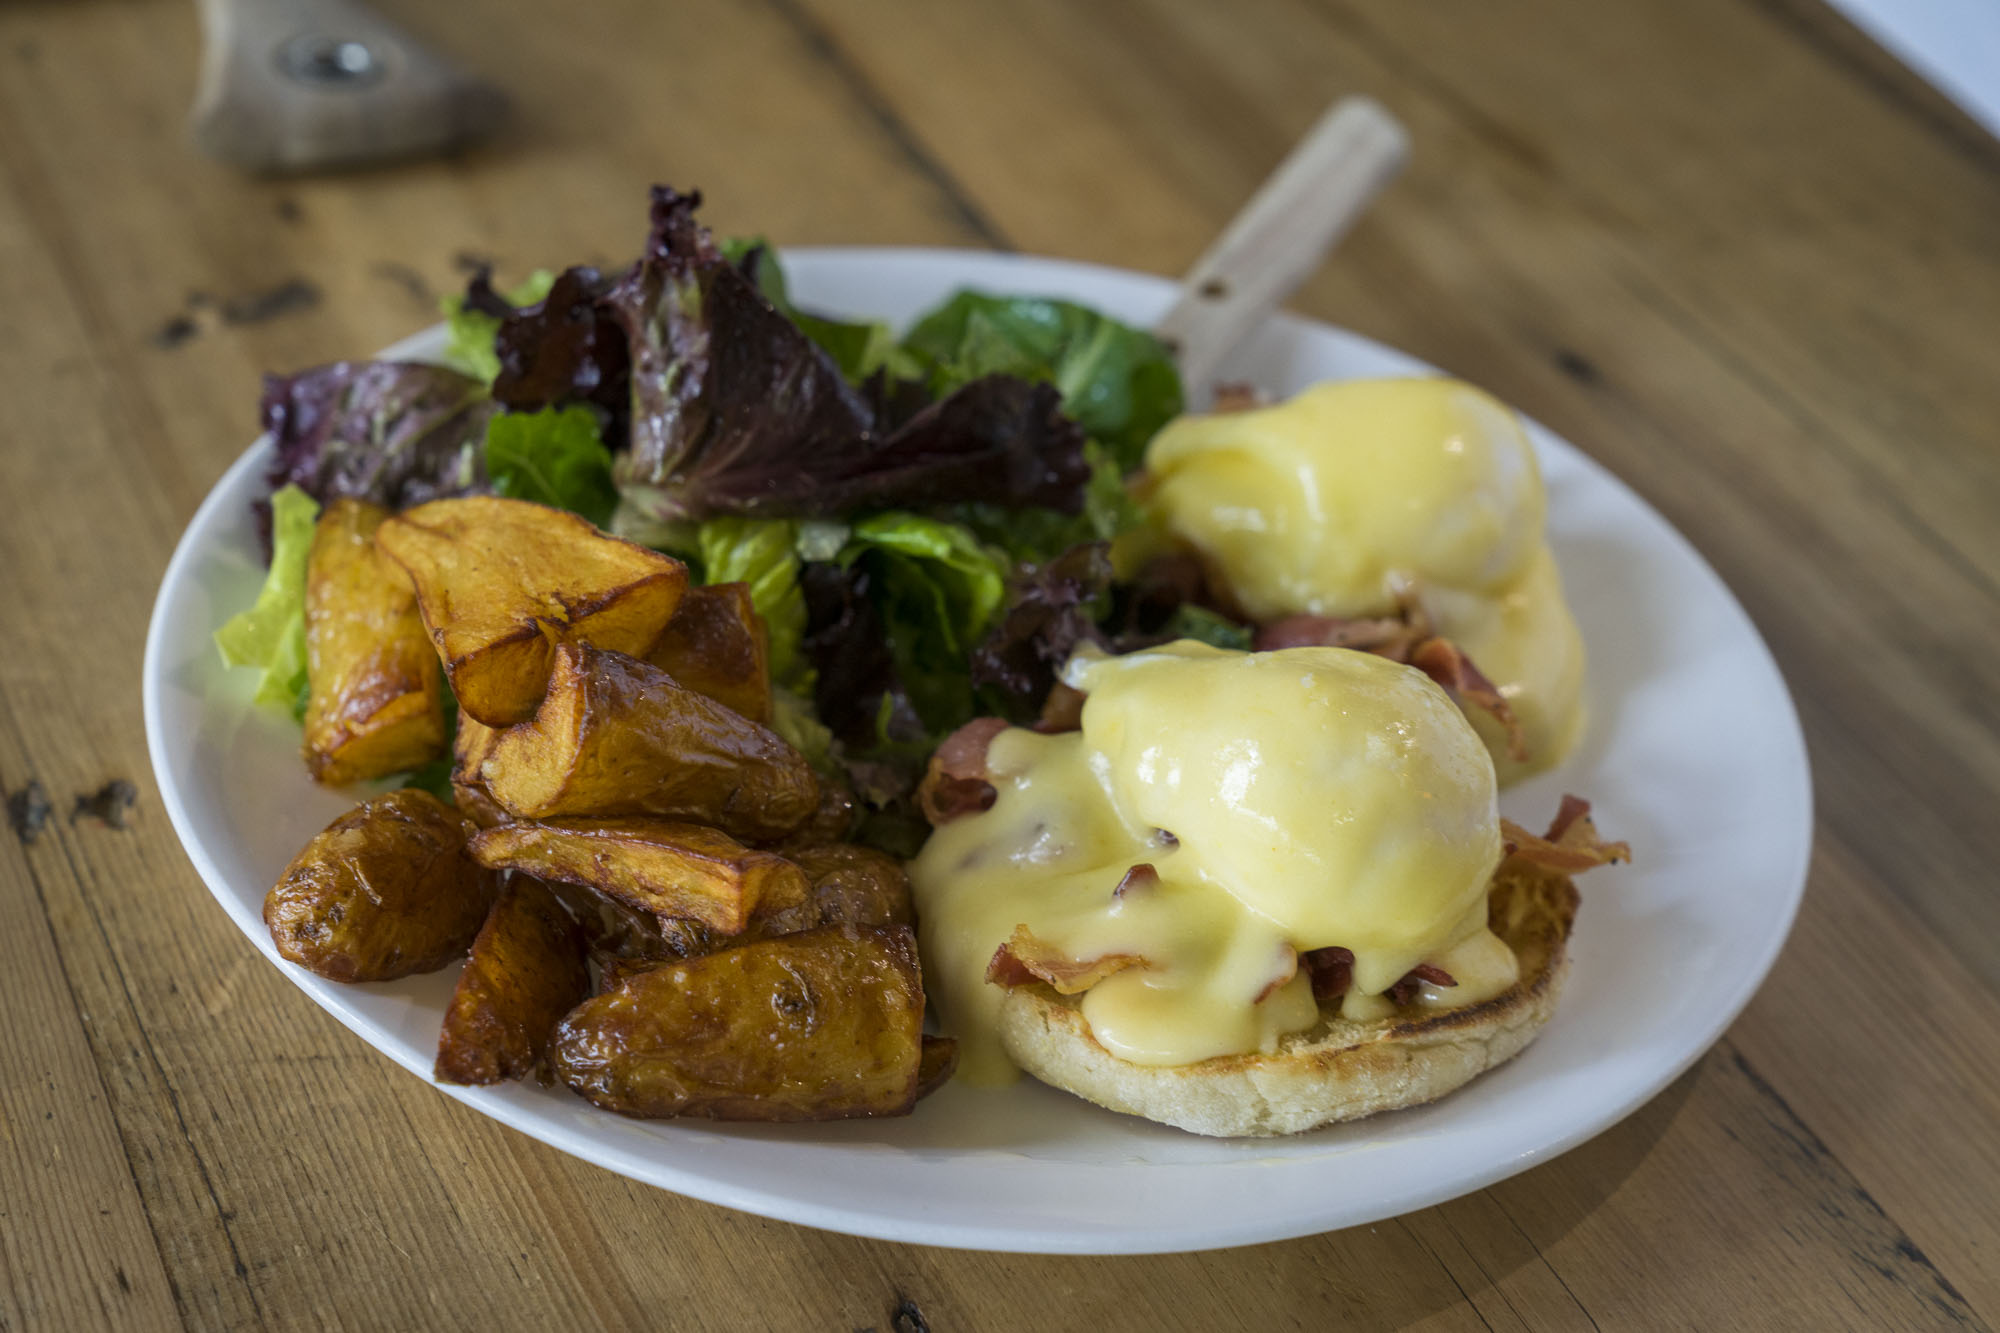 The Eggs Benedict with salad and fries at The Fat Hen in Seattle.